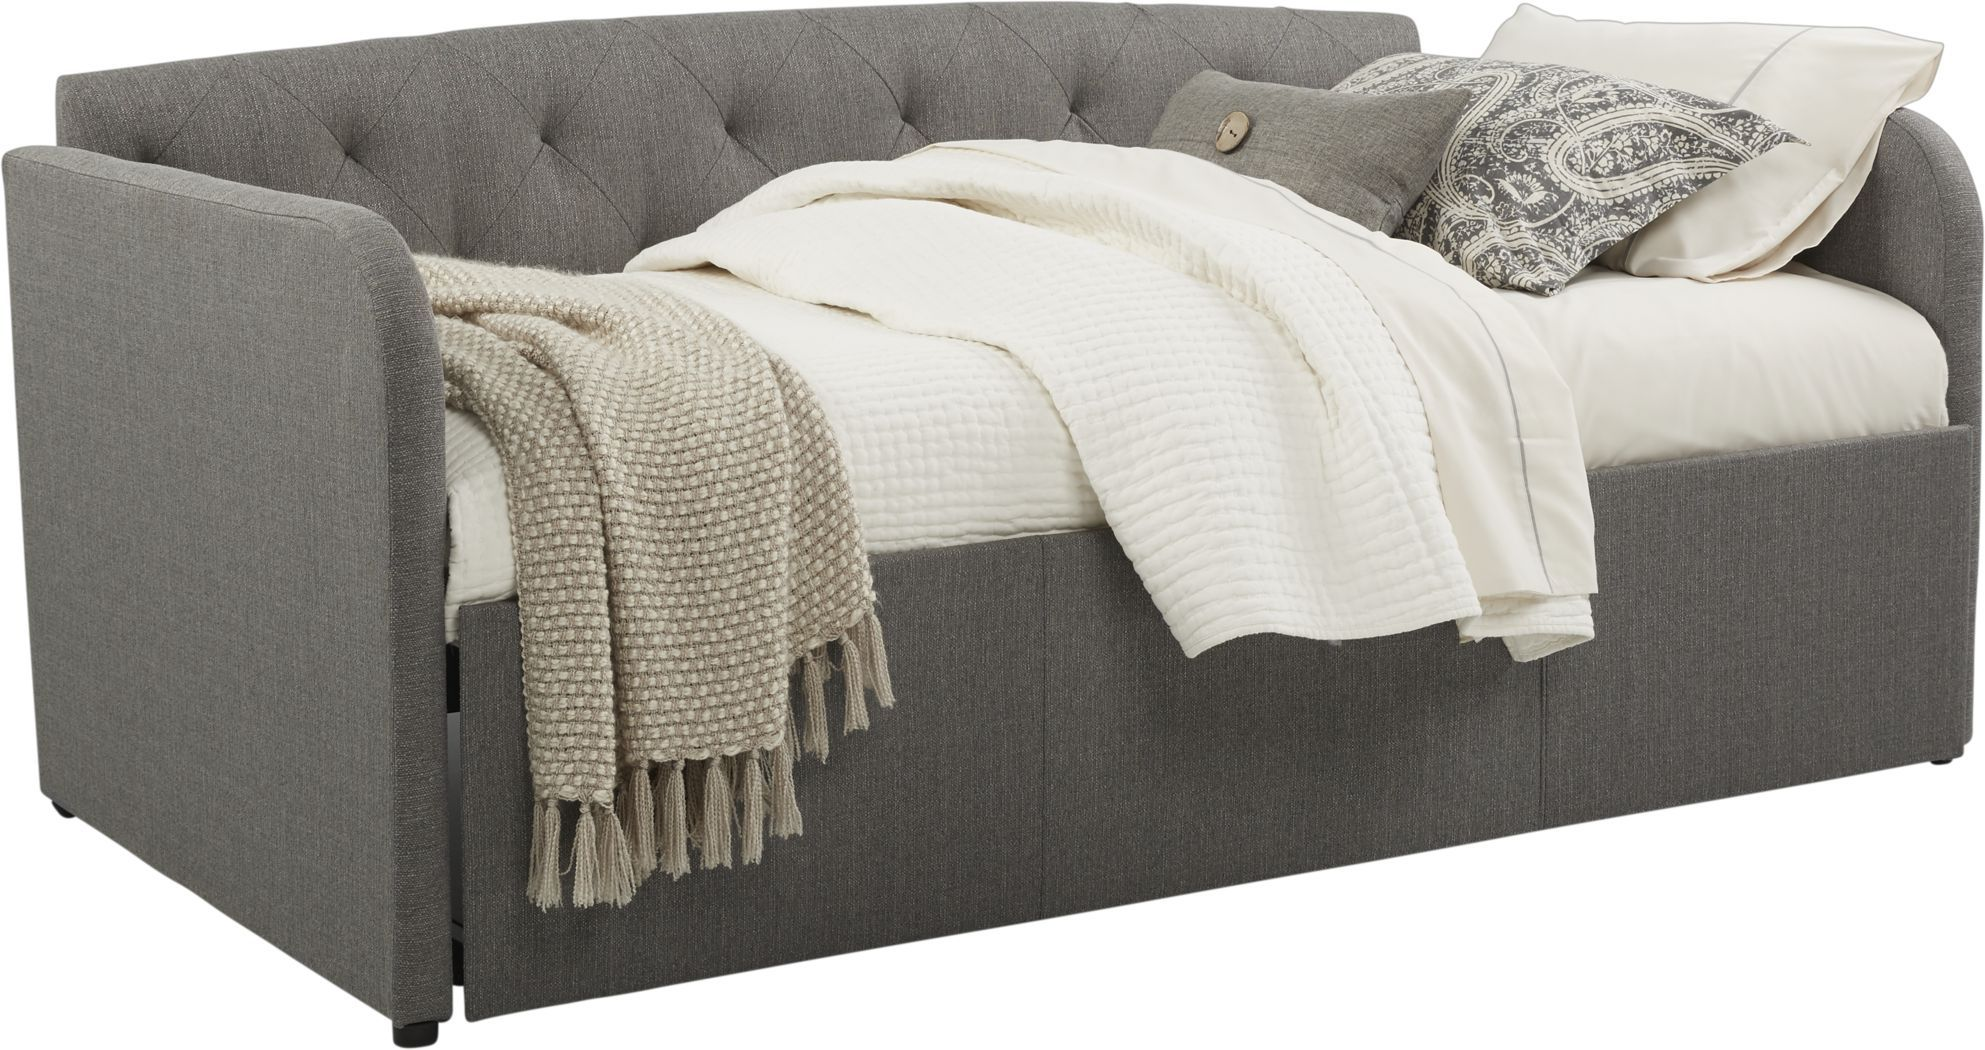 Lanie Gray Tufted Daybed With Trundle In 2020 Daybed With